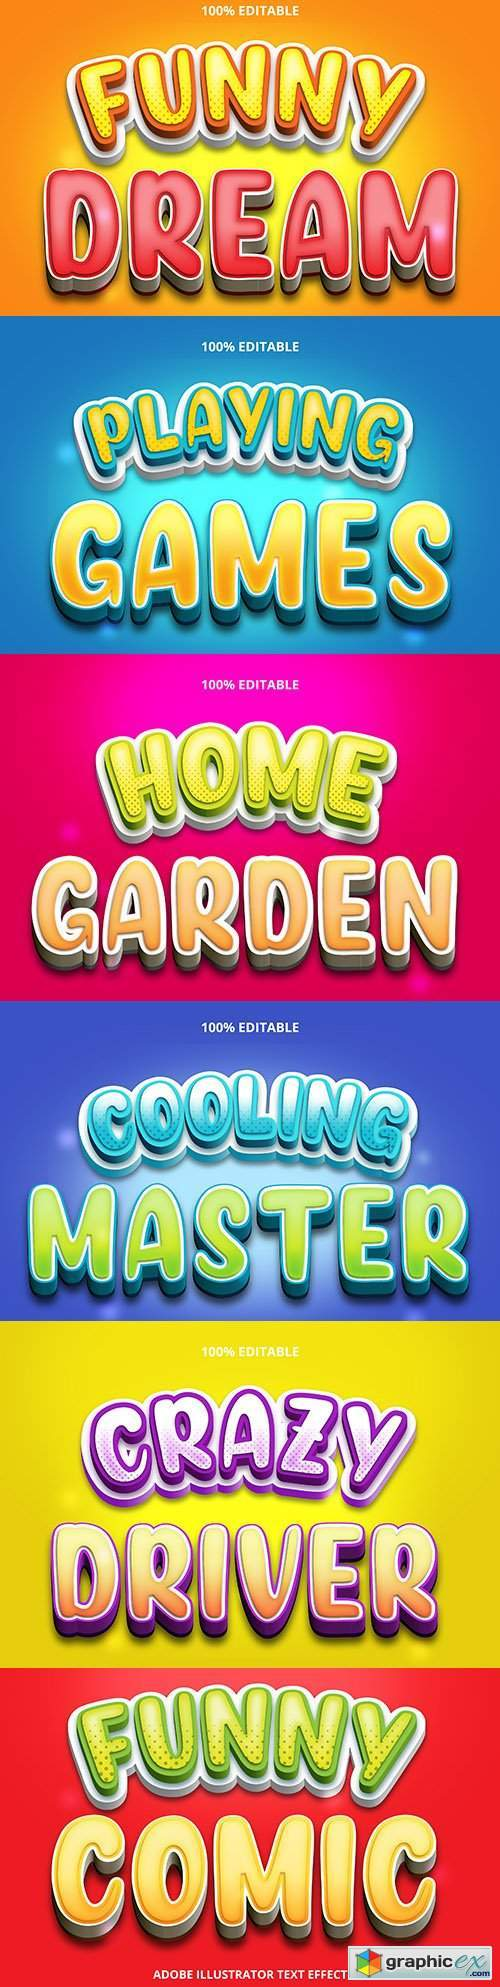 Editable font effect text collection illustration design 89